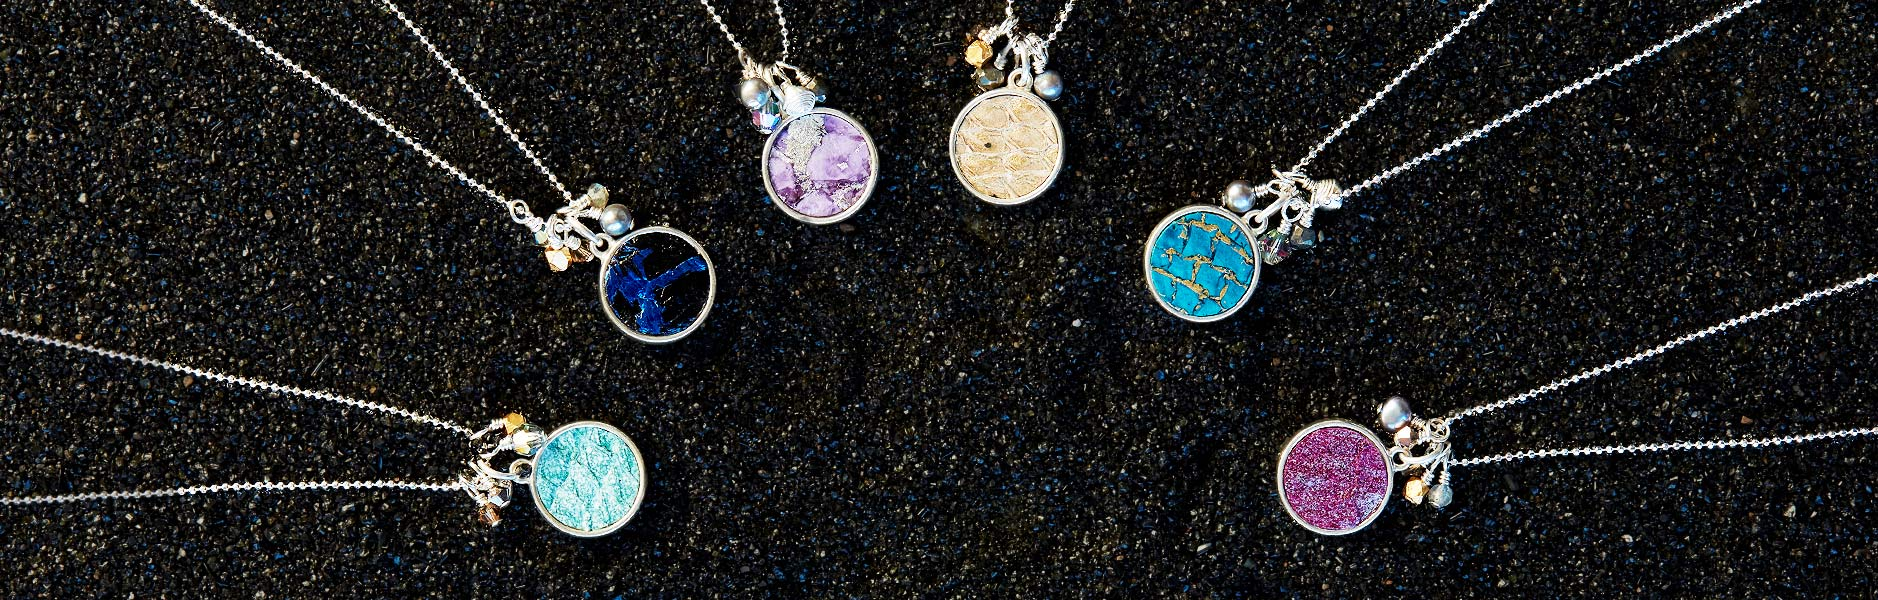 Moonrise Jewelry - Fish Leather Necklaces